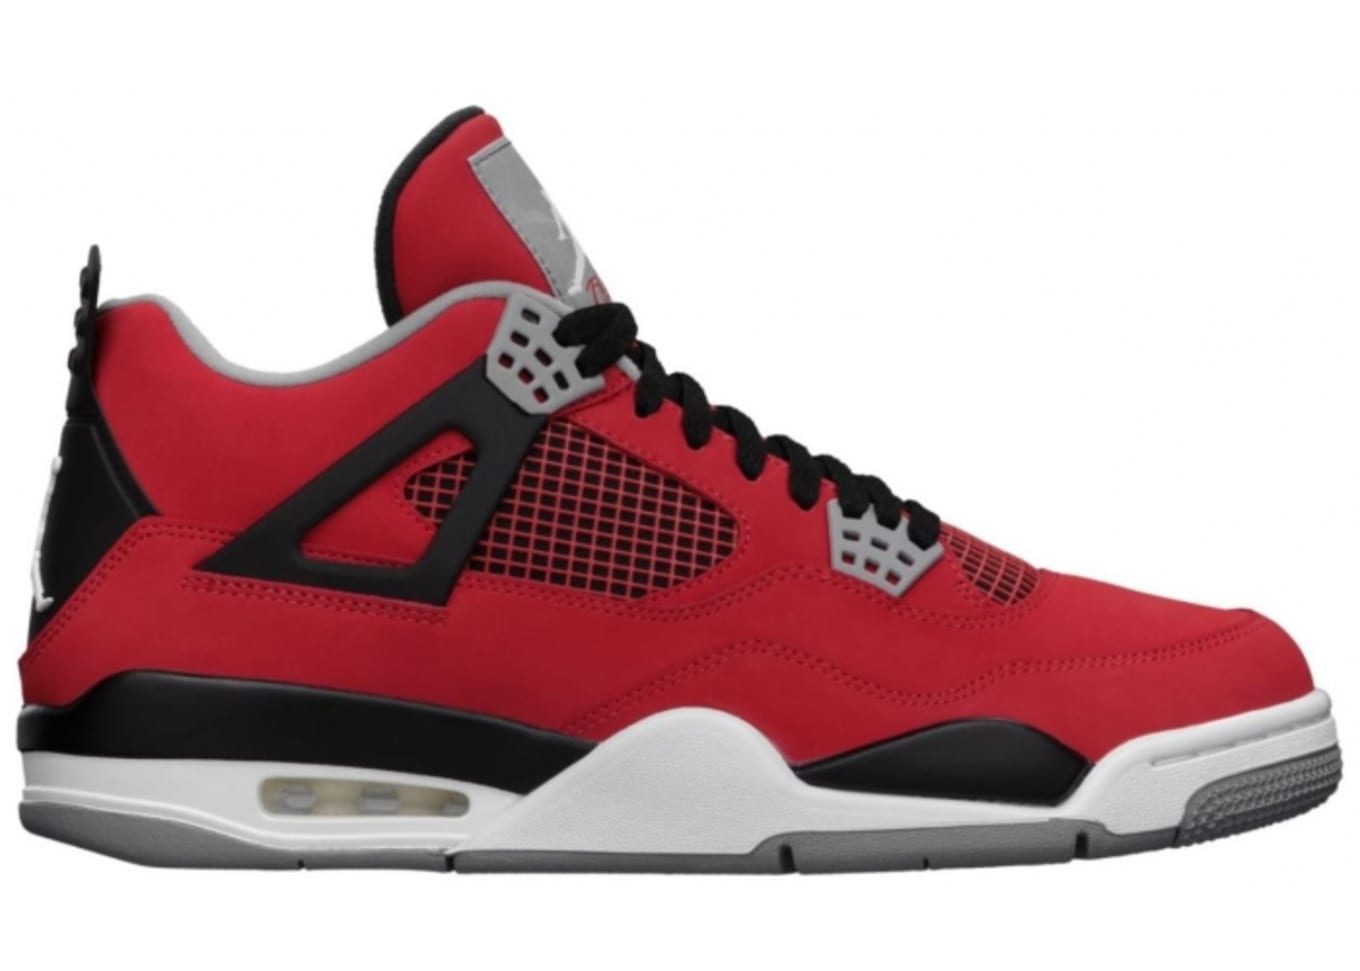 new arrival d4edc e6d69 Air Jordan 4 Retro